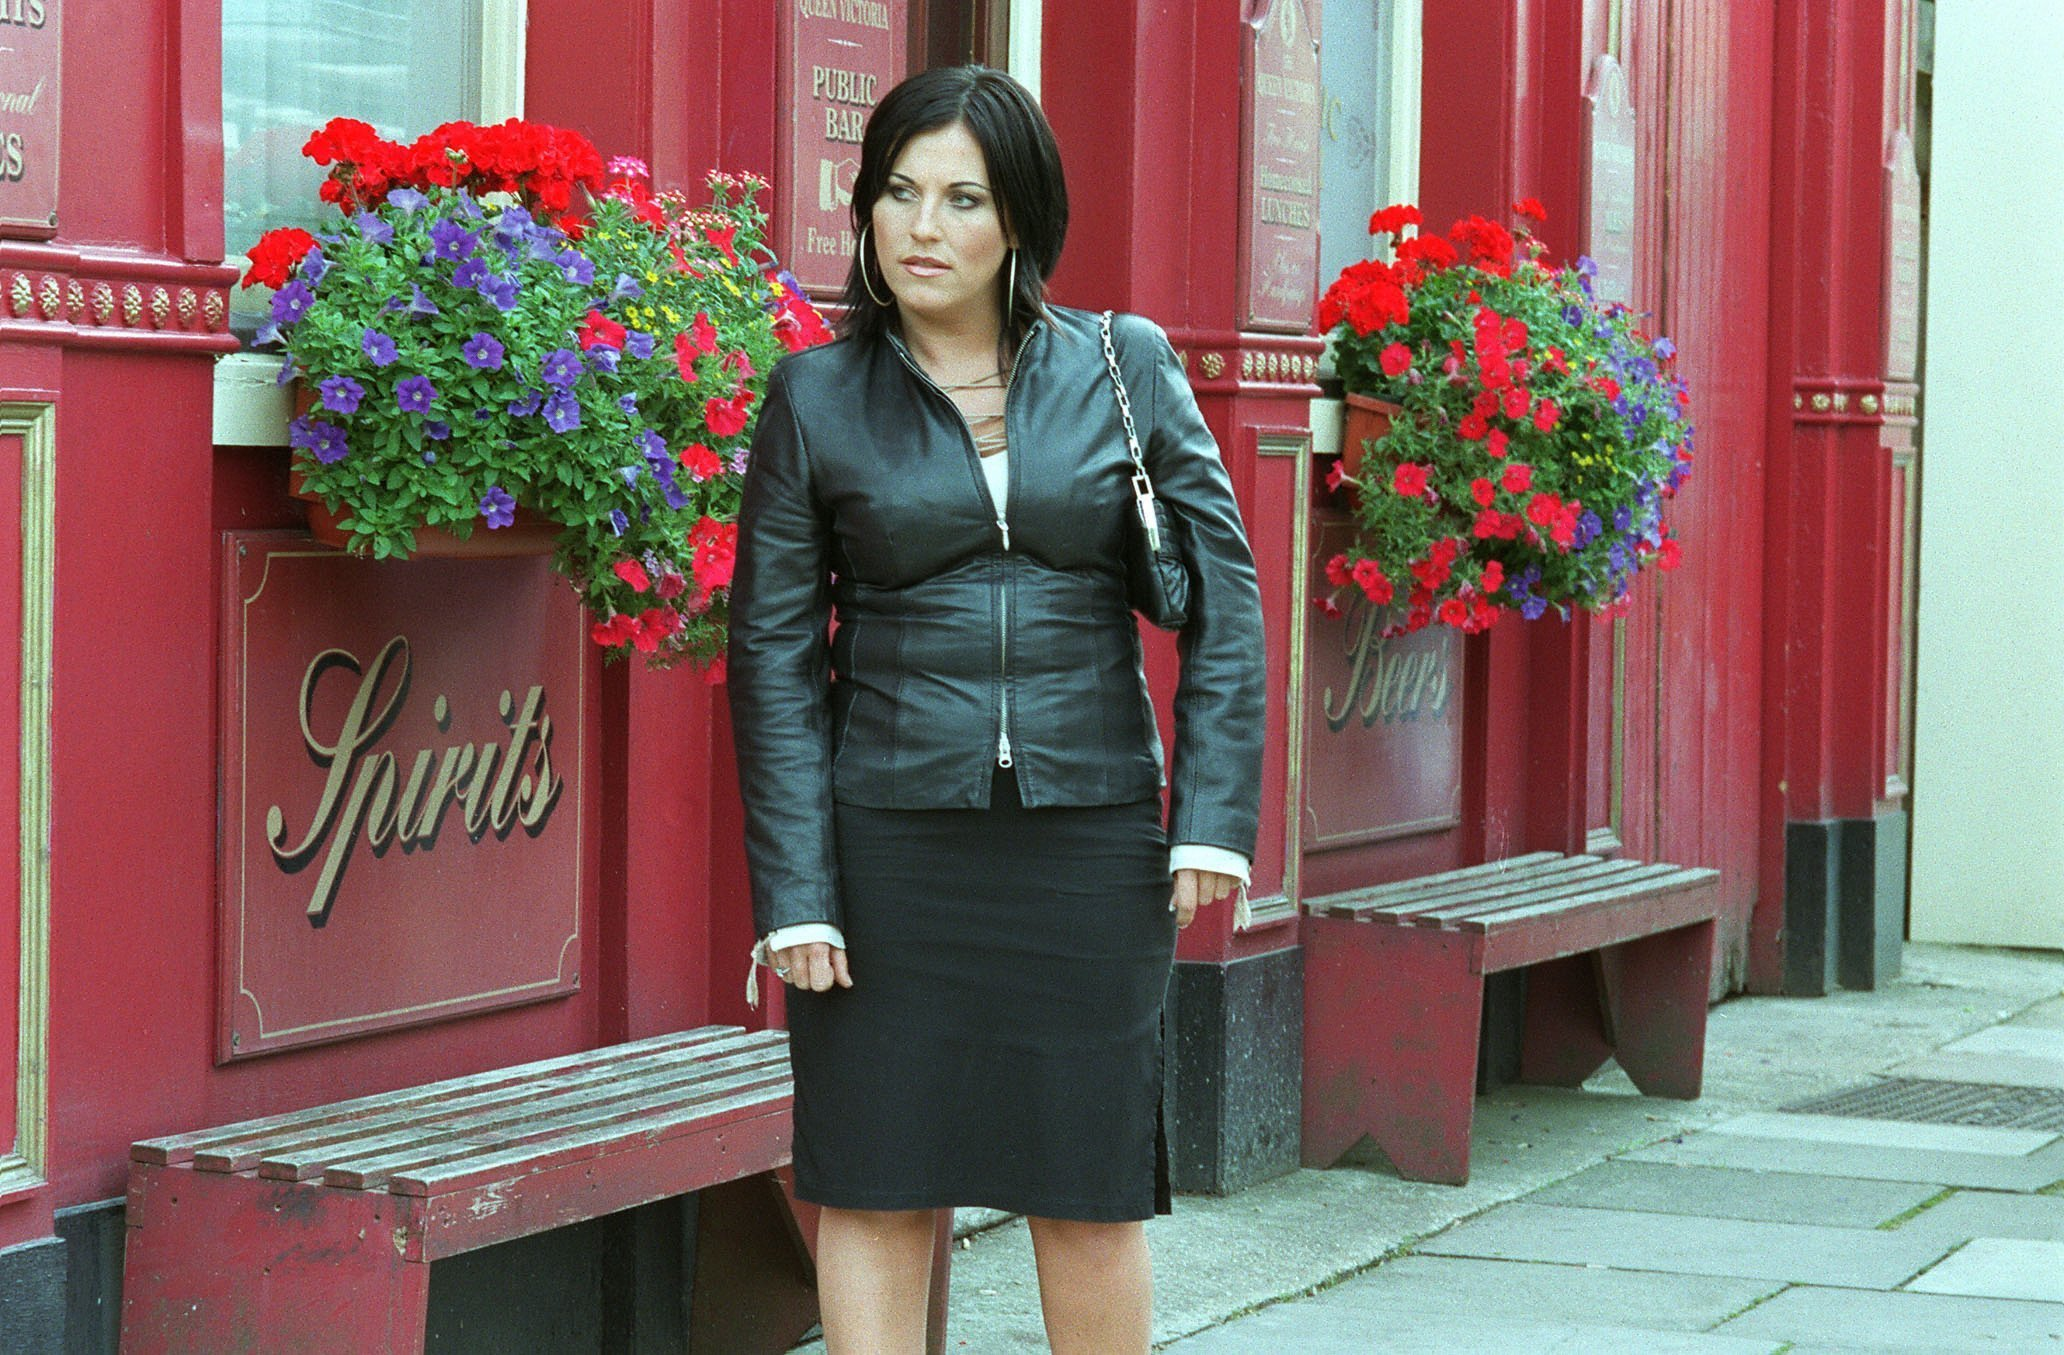 Jessie first appeared on Albert Square as Kat in 2000